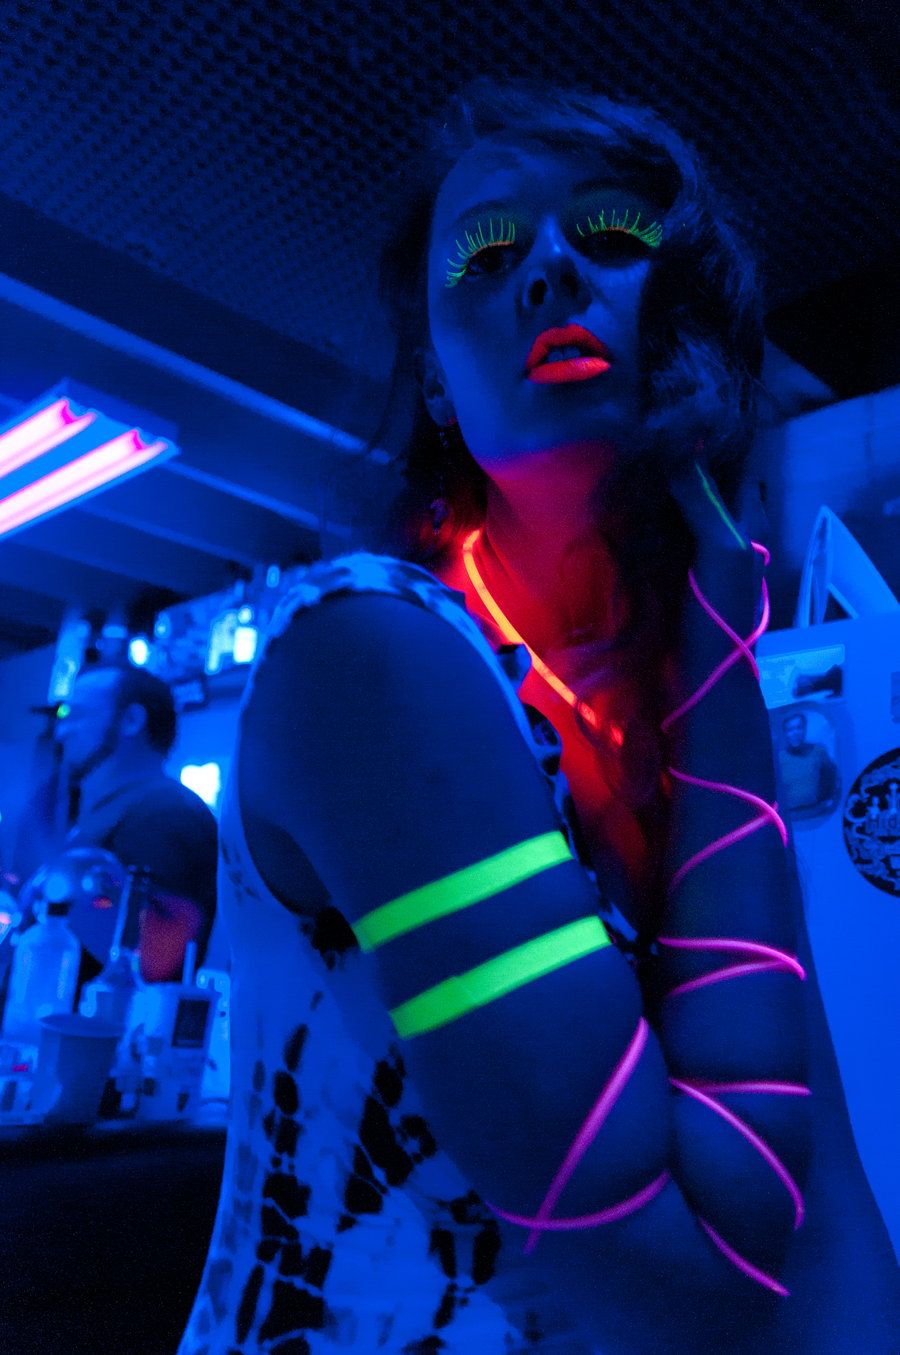 Black Light Party Outfit Ideas | Glow party outfit ...